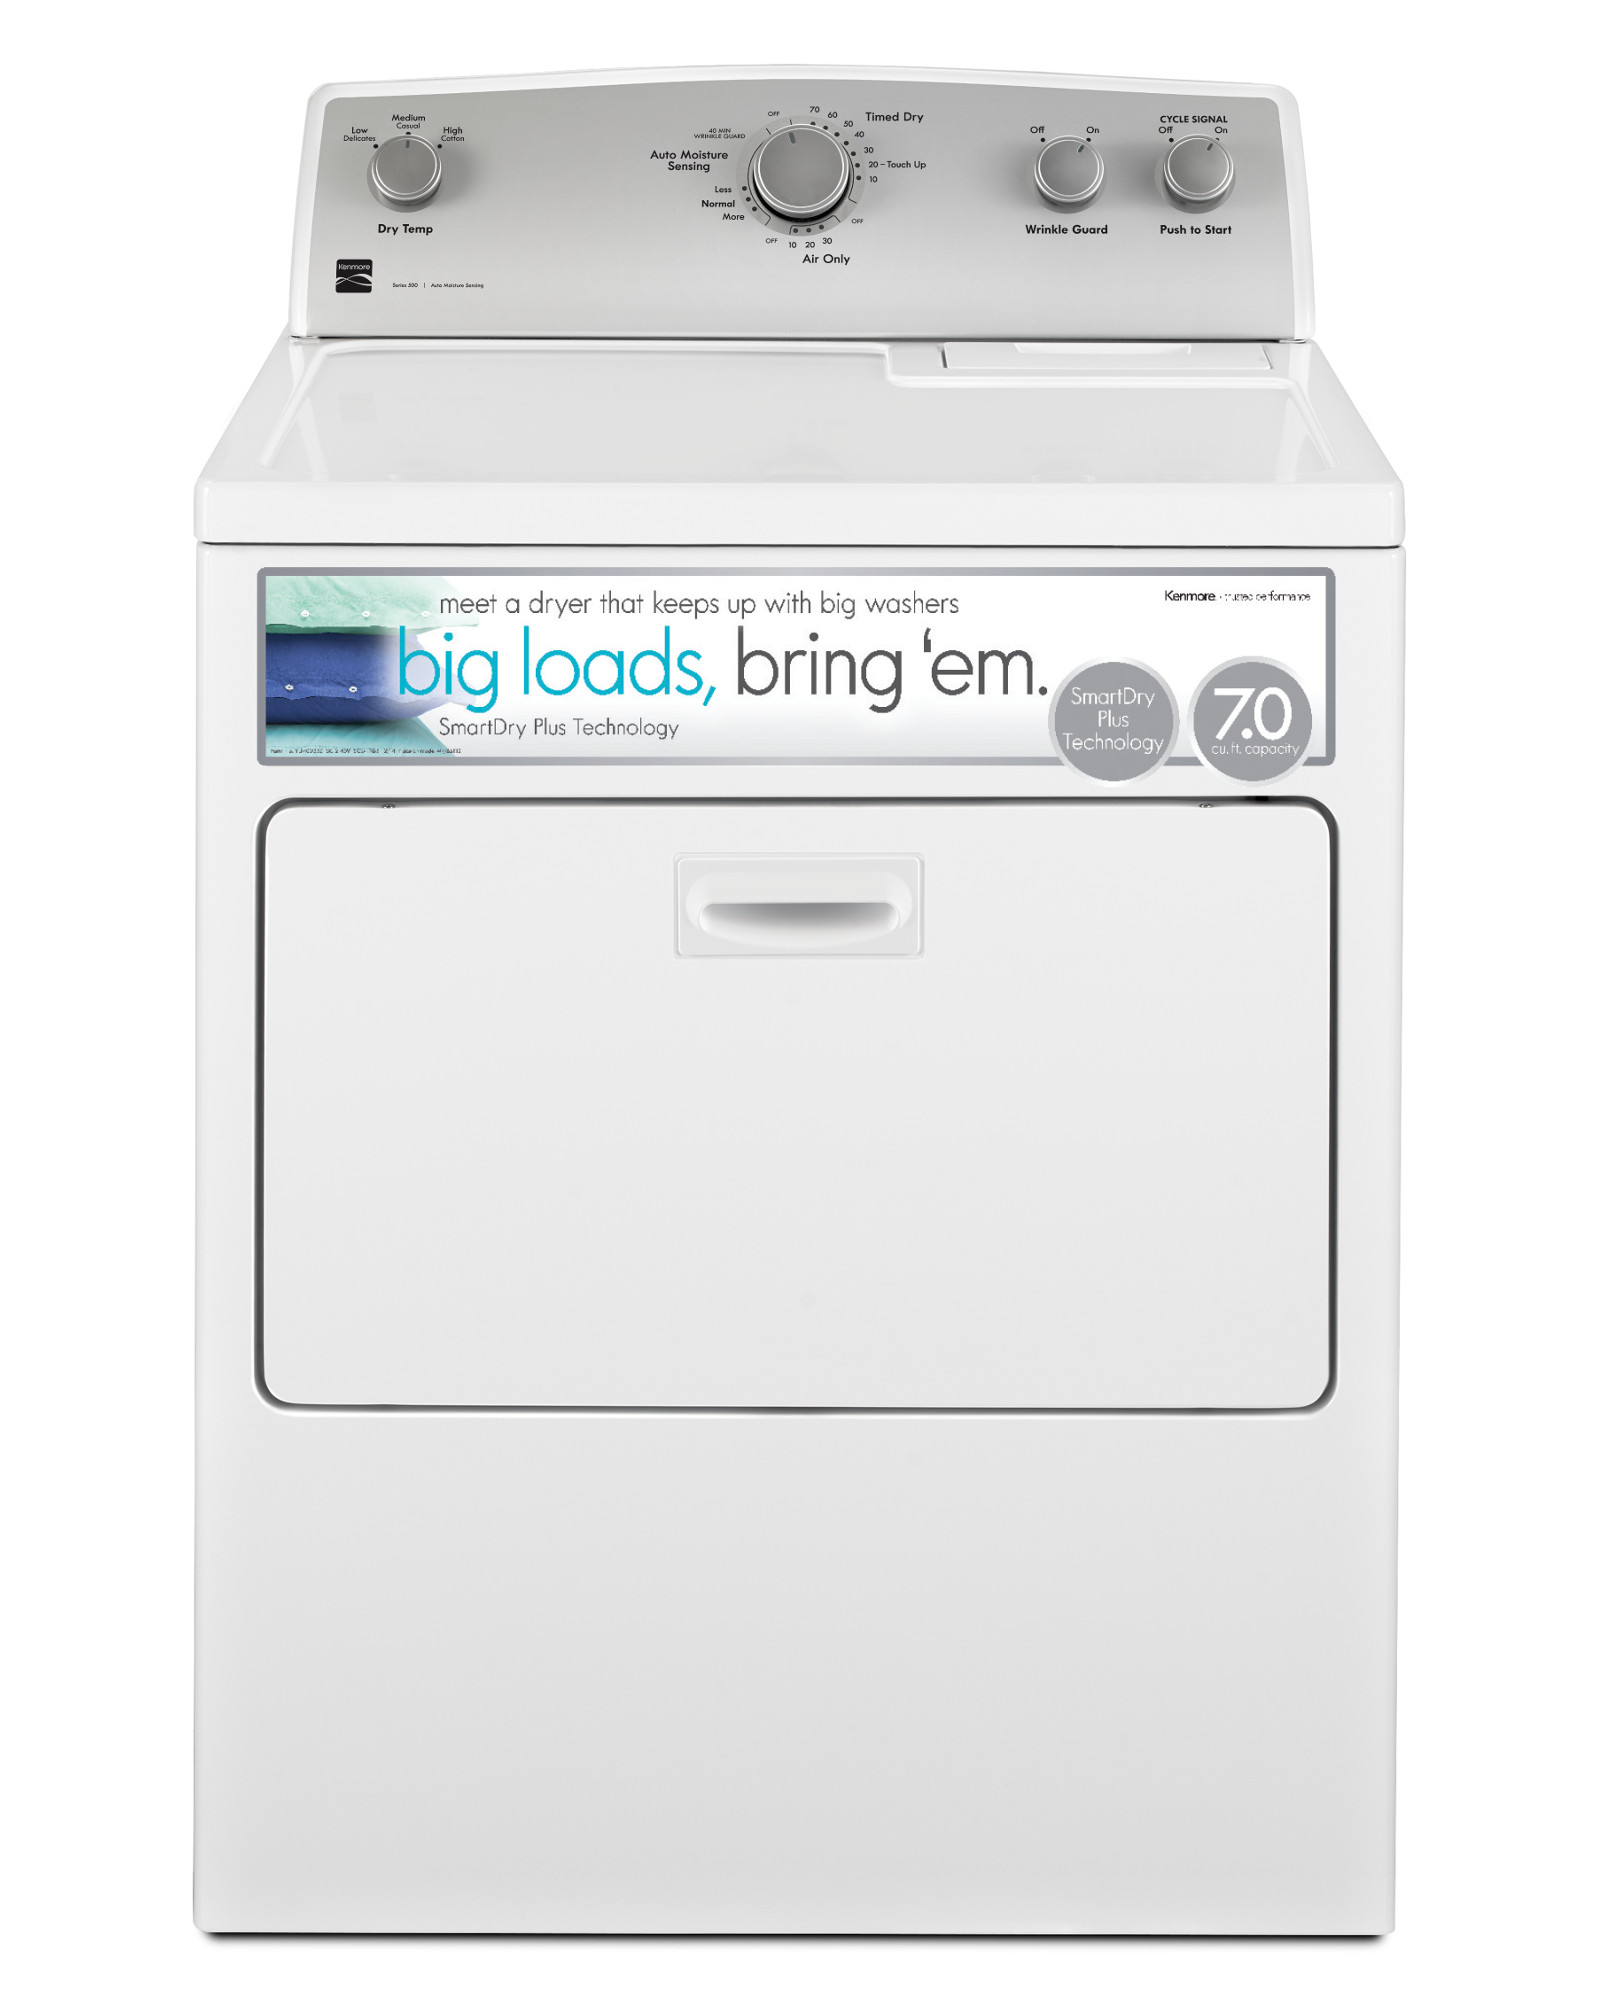 Kenmore 75132 7.0 cu. ft. Gas Dryer w/ SmartDry Plus Technology - White